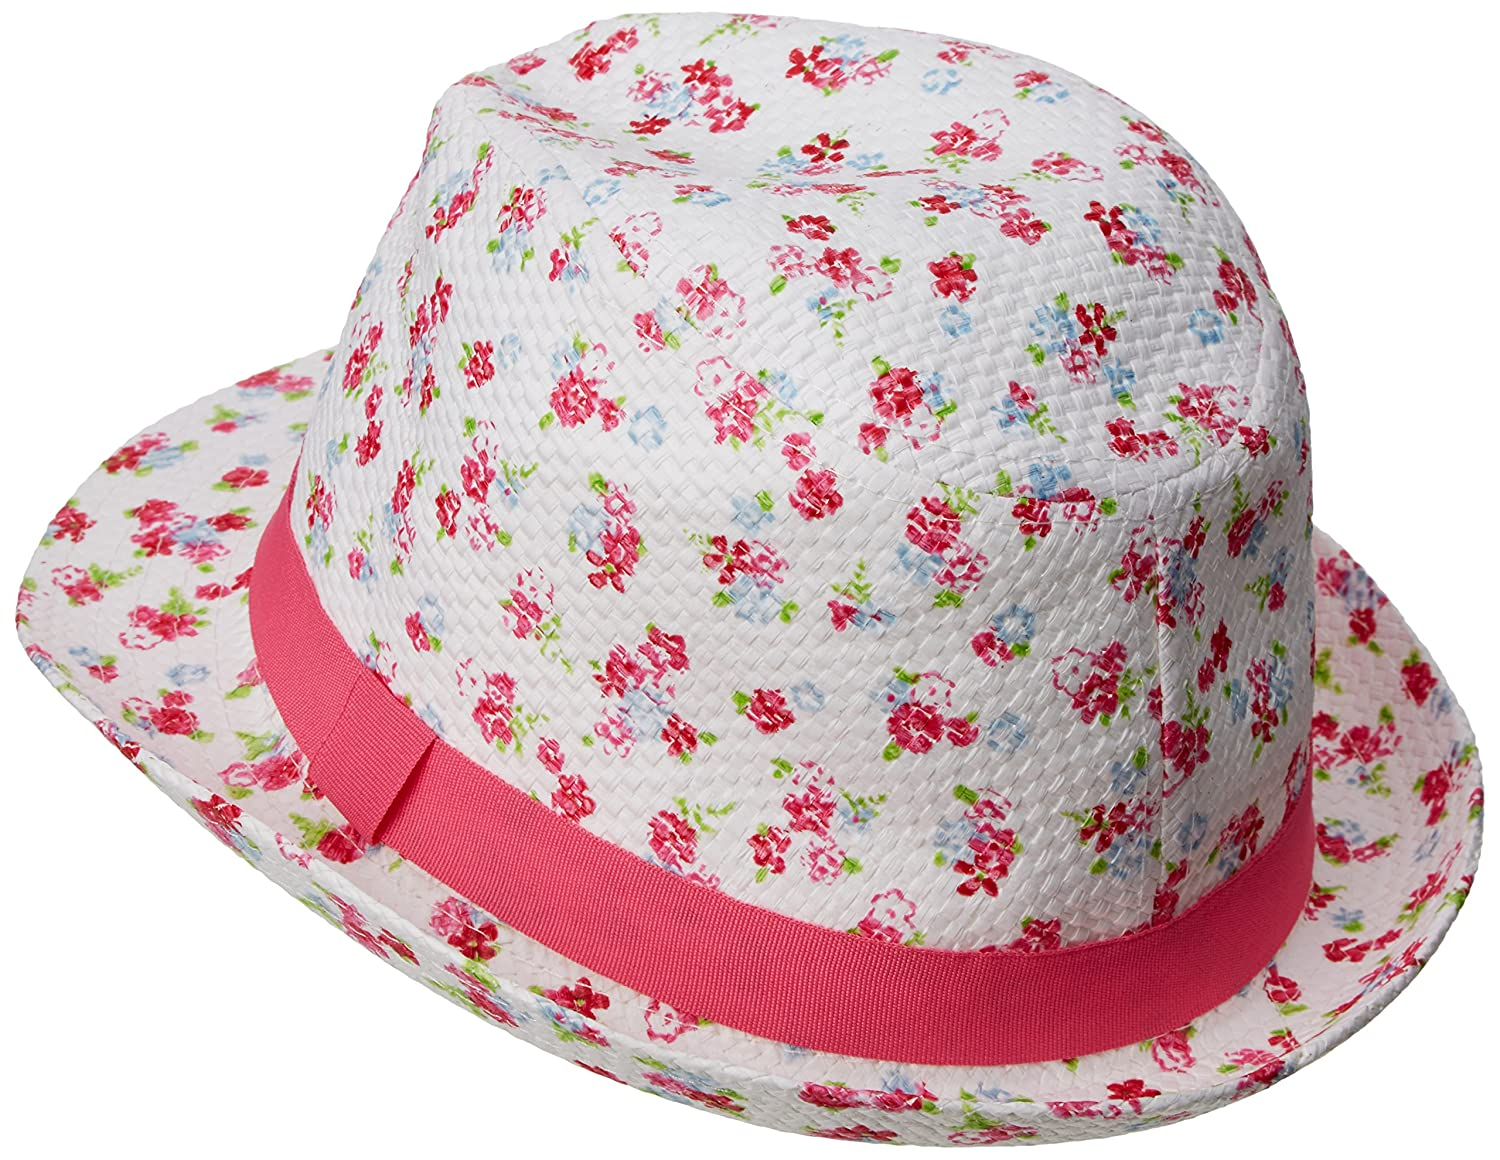 79bea580a Pumpkin Patch Girl's Printed Fedora Floral Hat, Pink (Raspberry ...